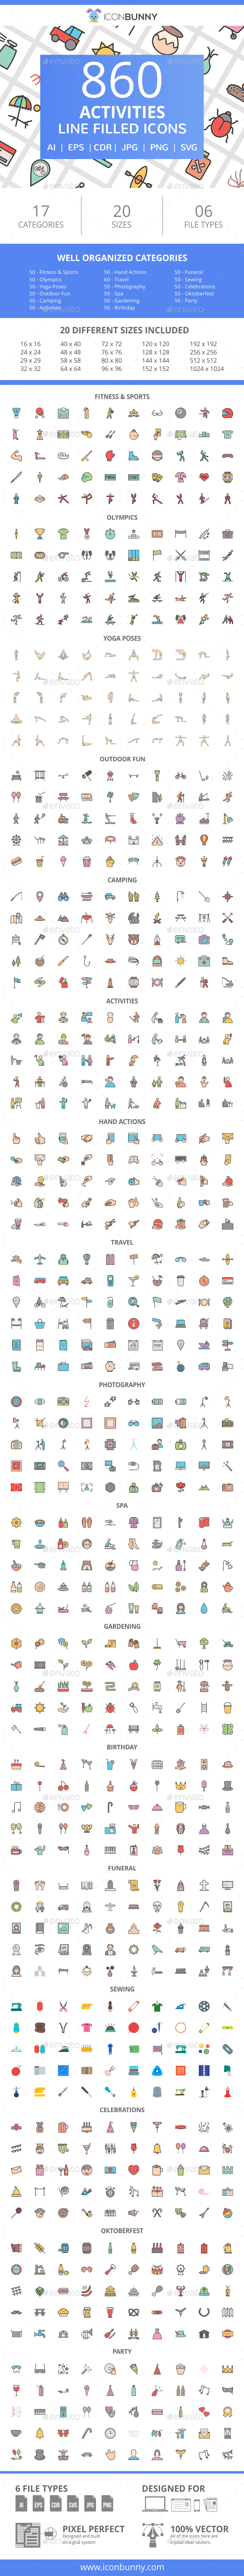 GraphicRiver 860 Activities Filled Line Icons 21087057